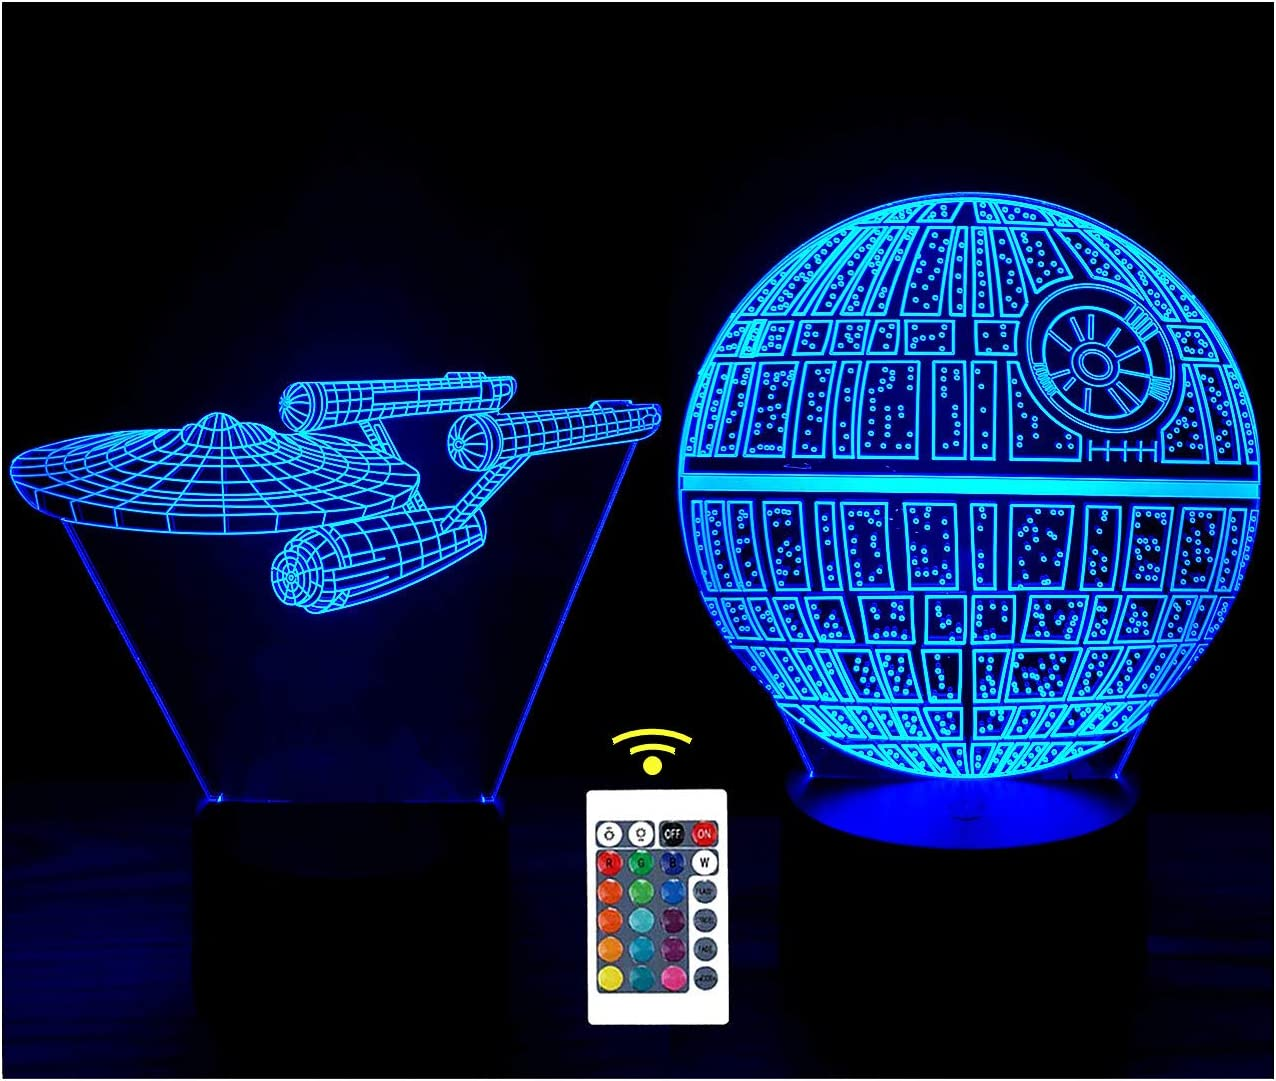 3D Optical Illusion Night Light , LED Desk Lamp Touch Control 7 Color Change USB Powered for Home Decorations or Kids Gifts (Death Star+Starships)